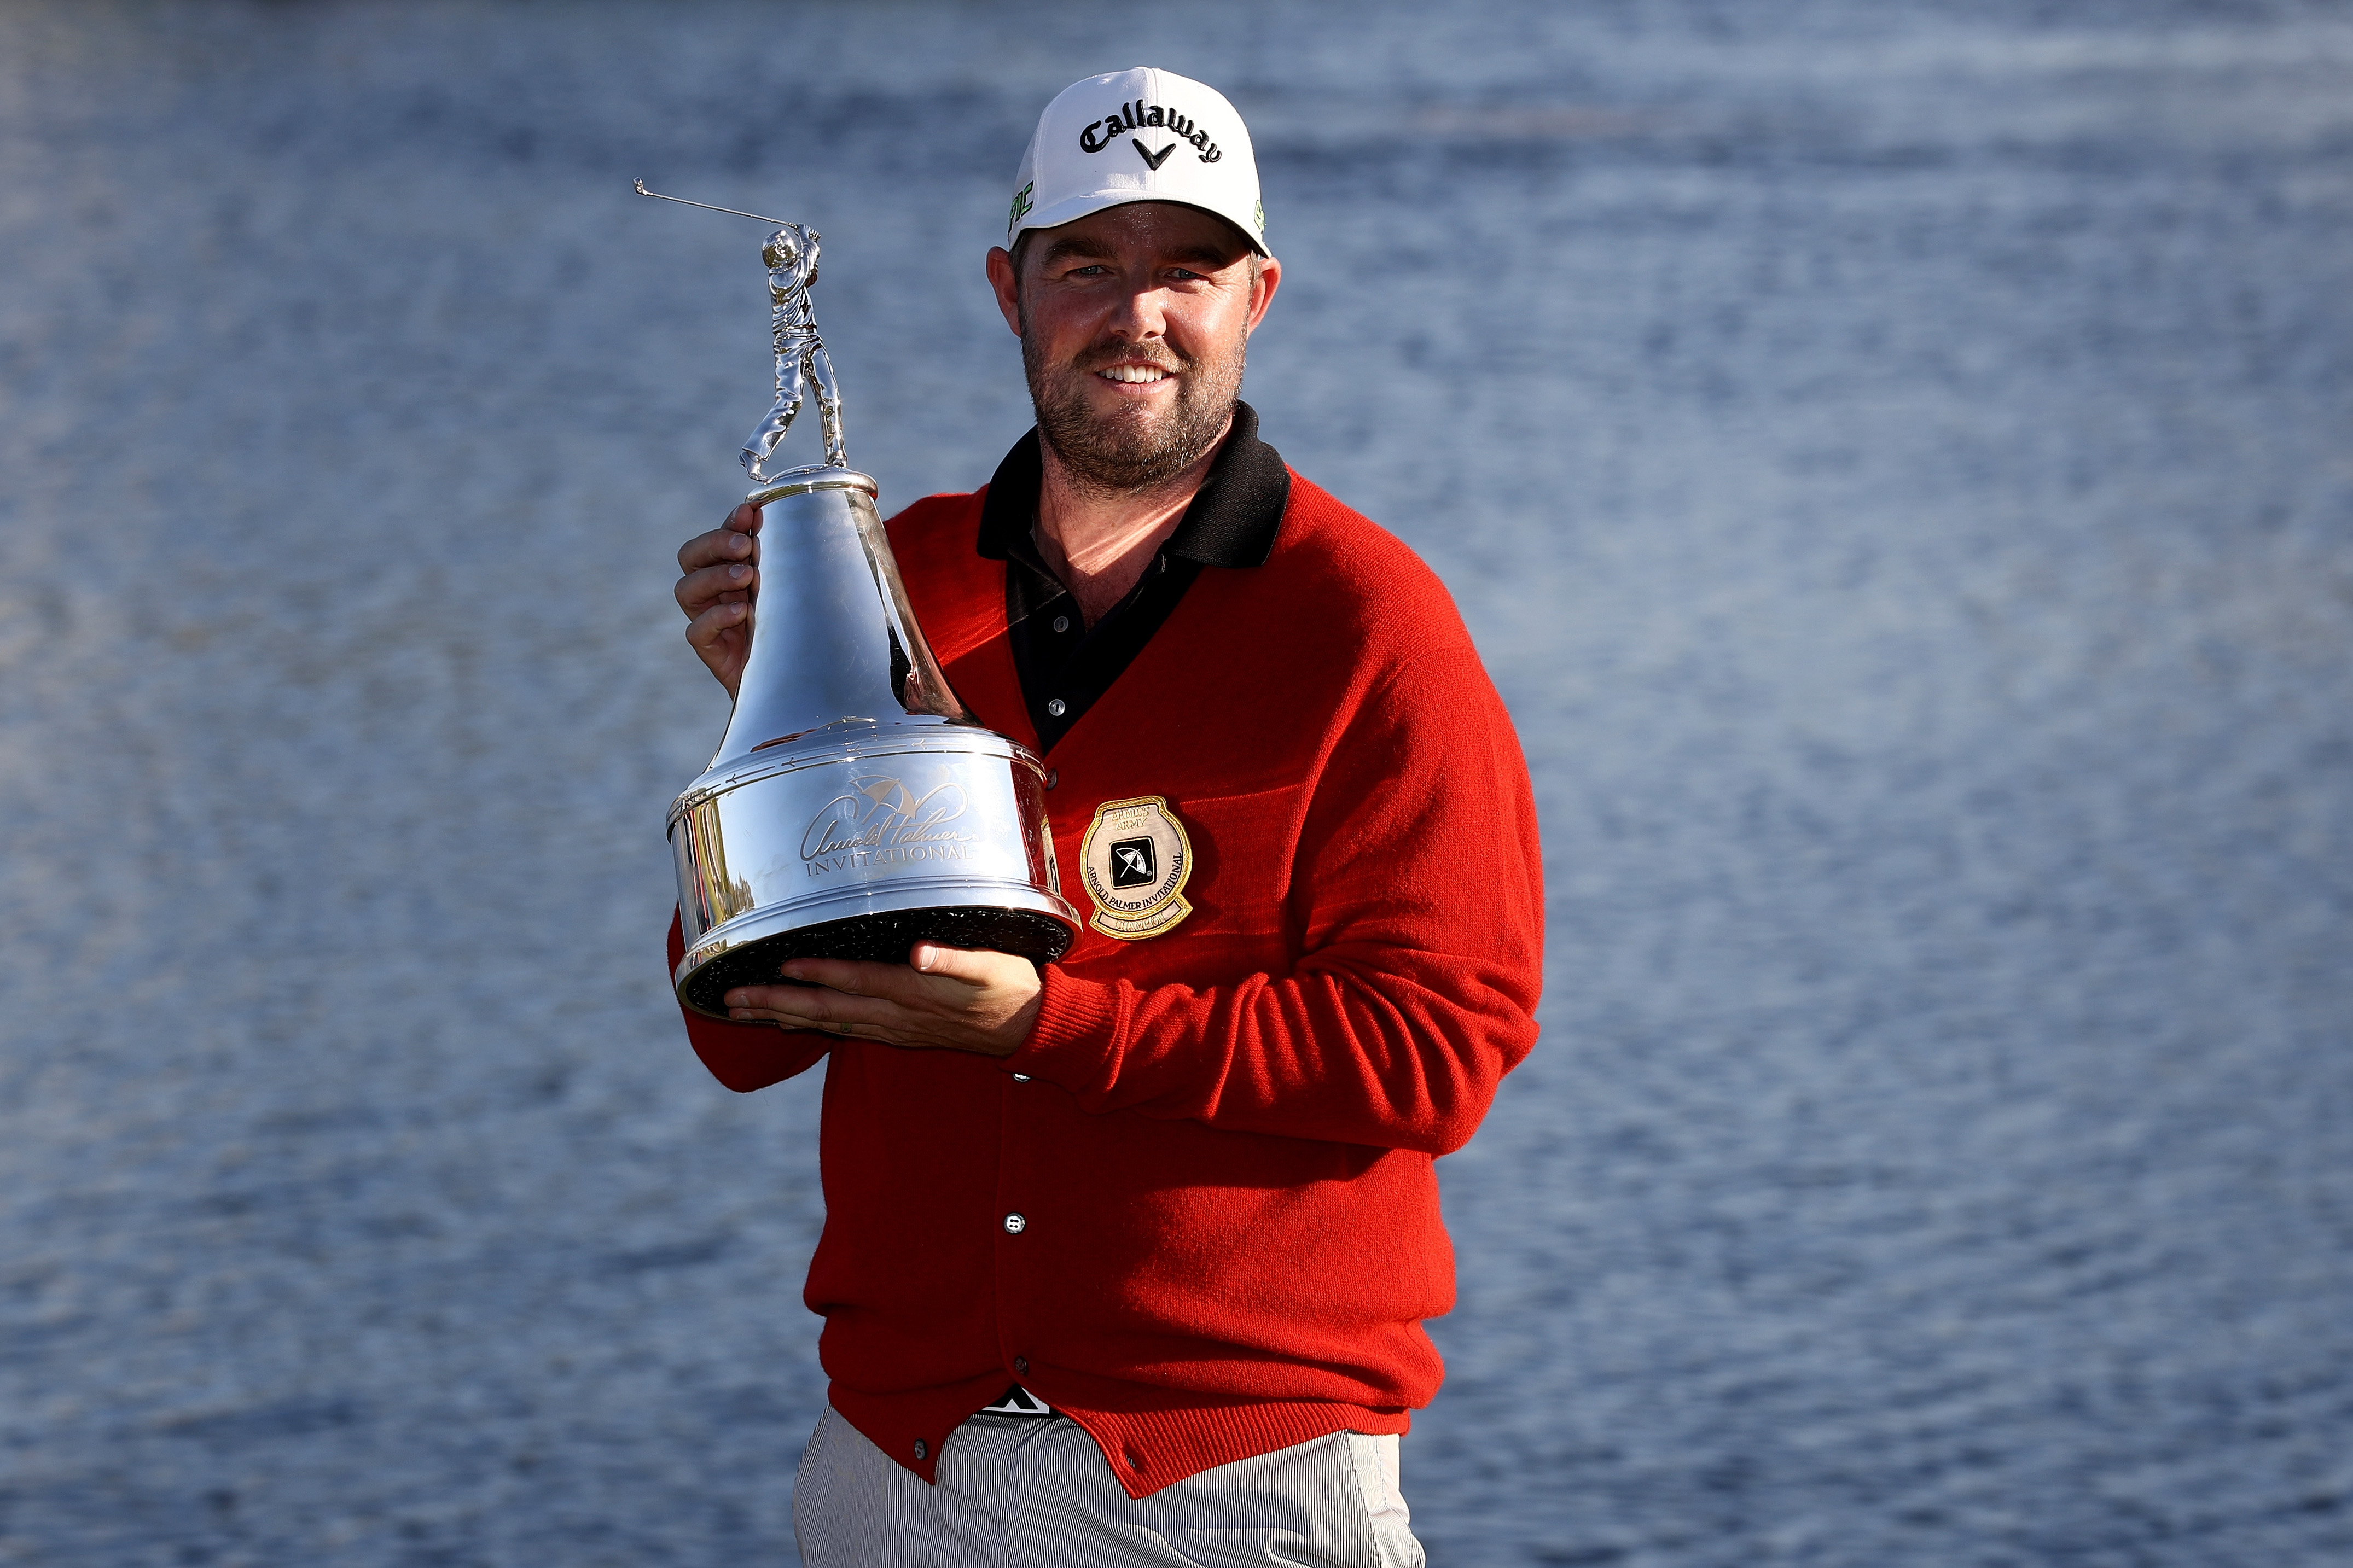 Marc Leishman poses with the red cardigan after winning the Arnold Palmer Invitational.